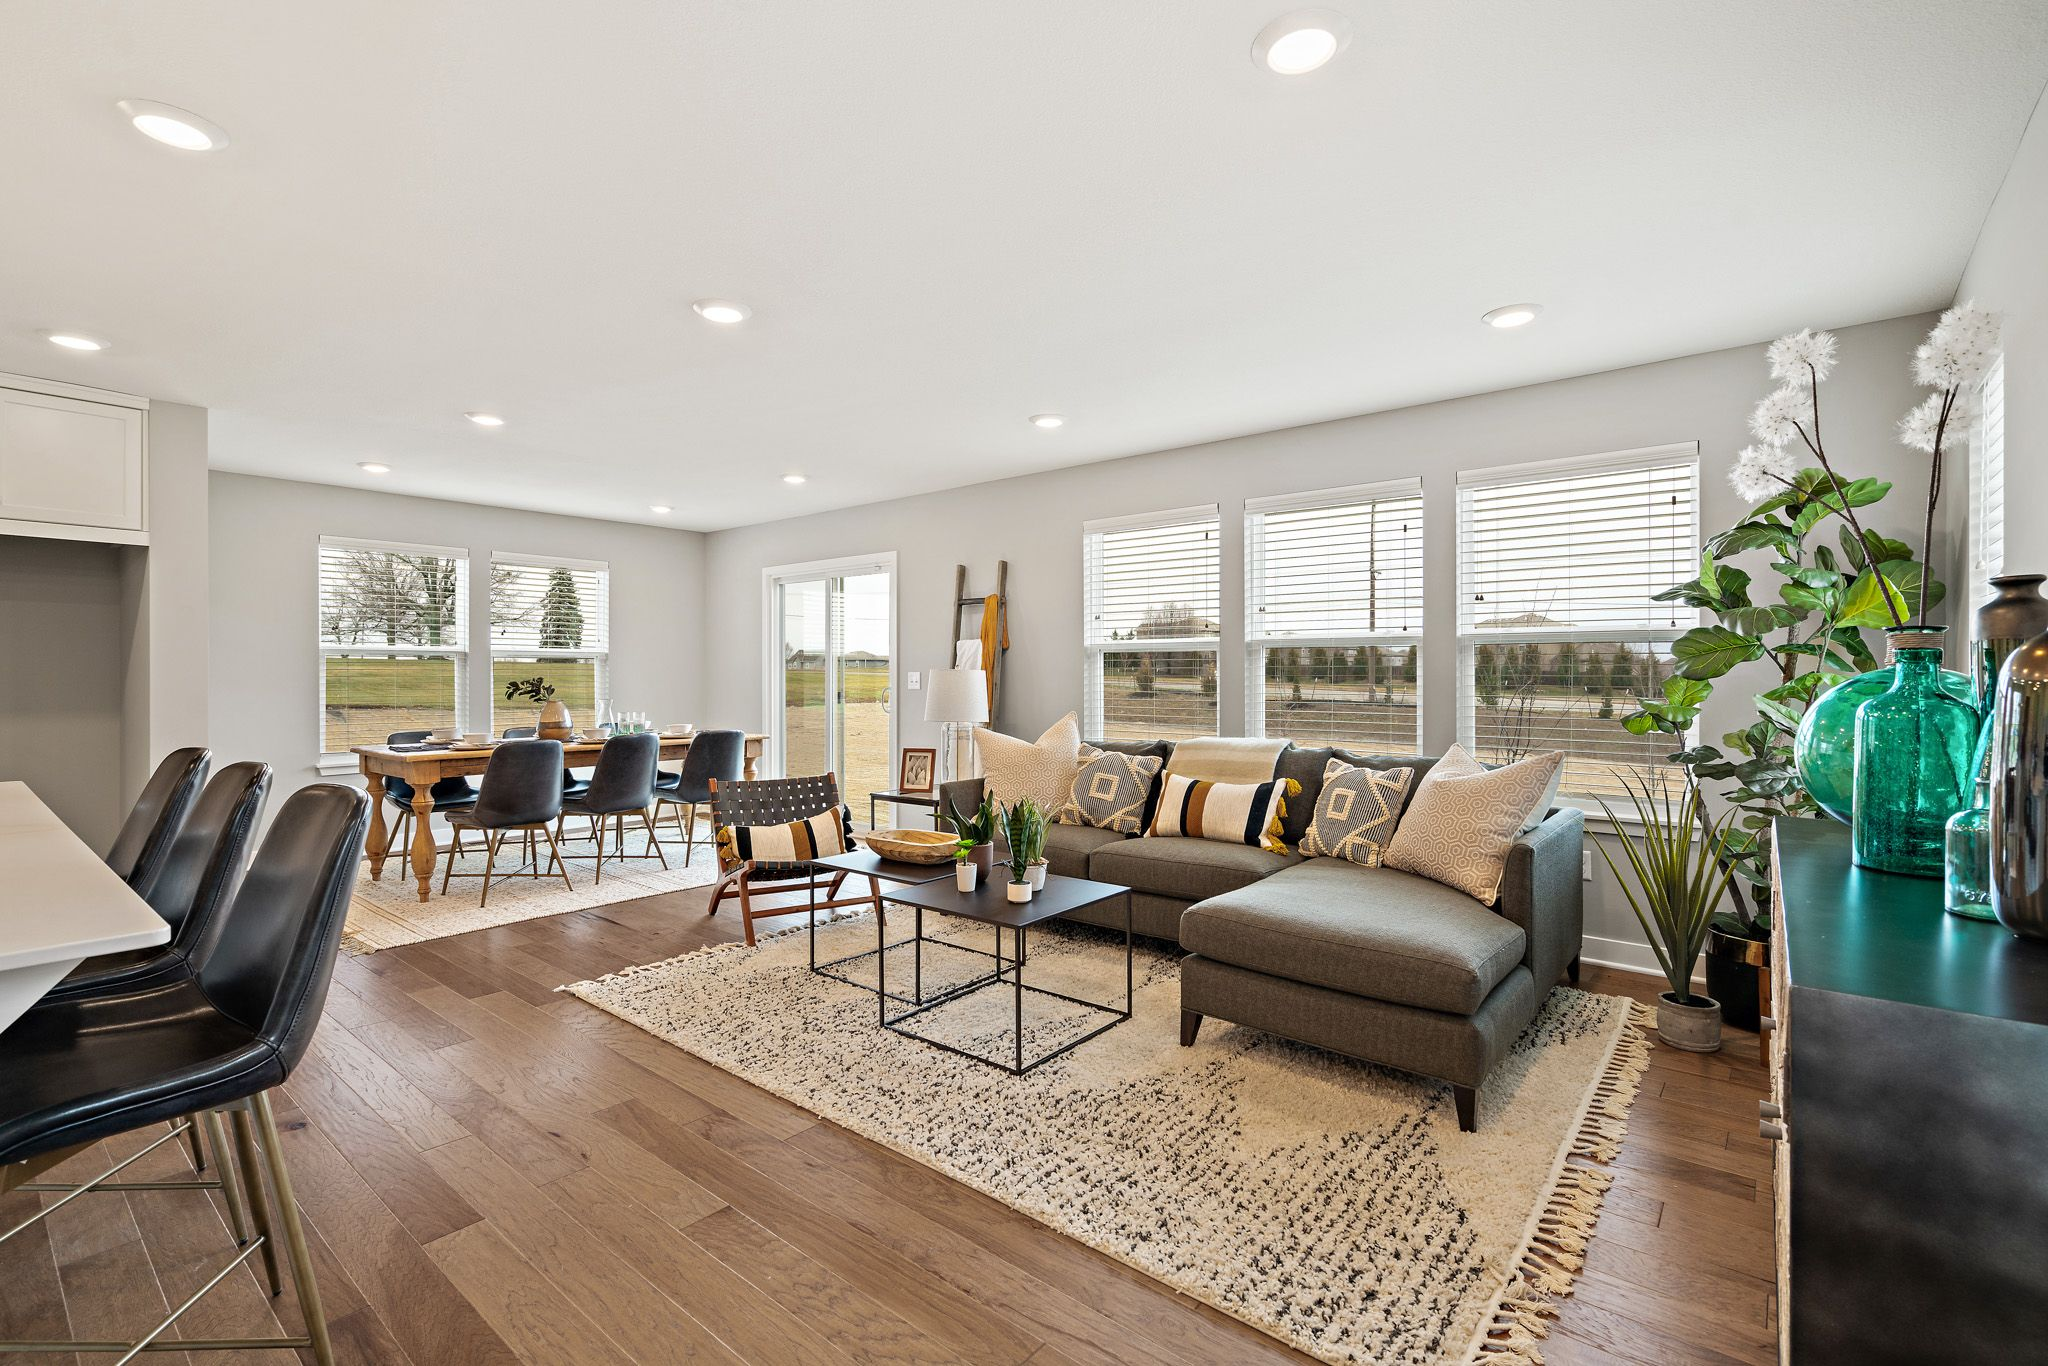 Living Area featured in the honeydew - contemporary By clover & hive in Kansas City, MO